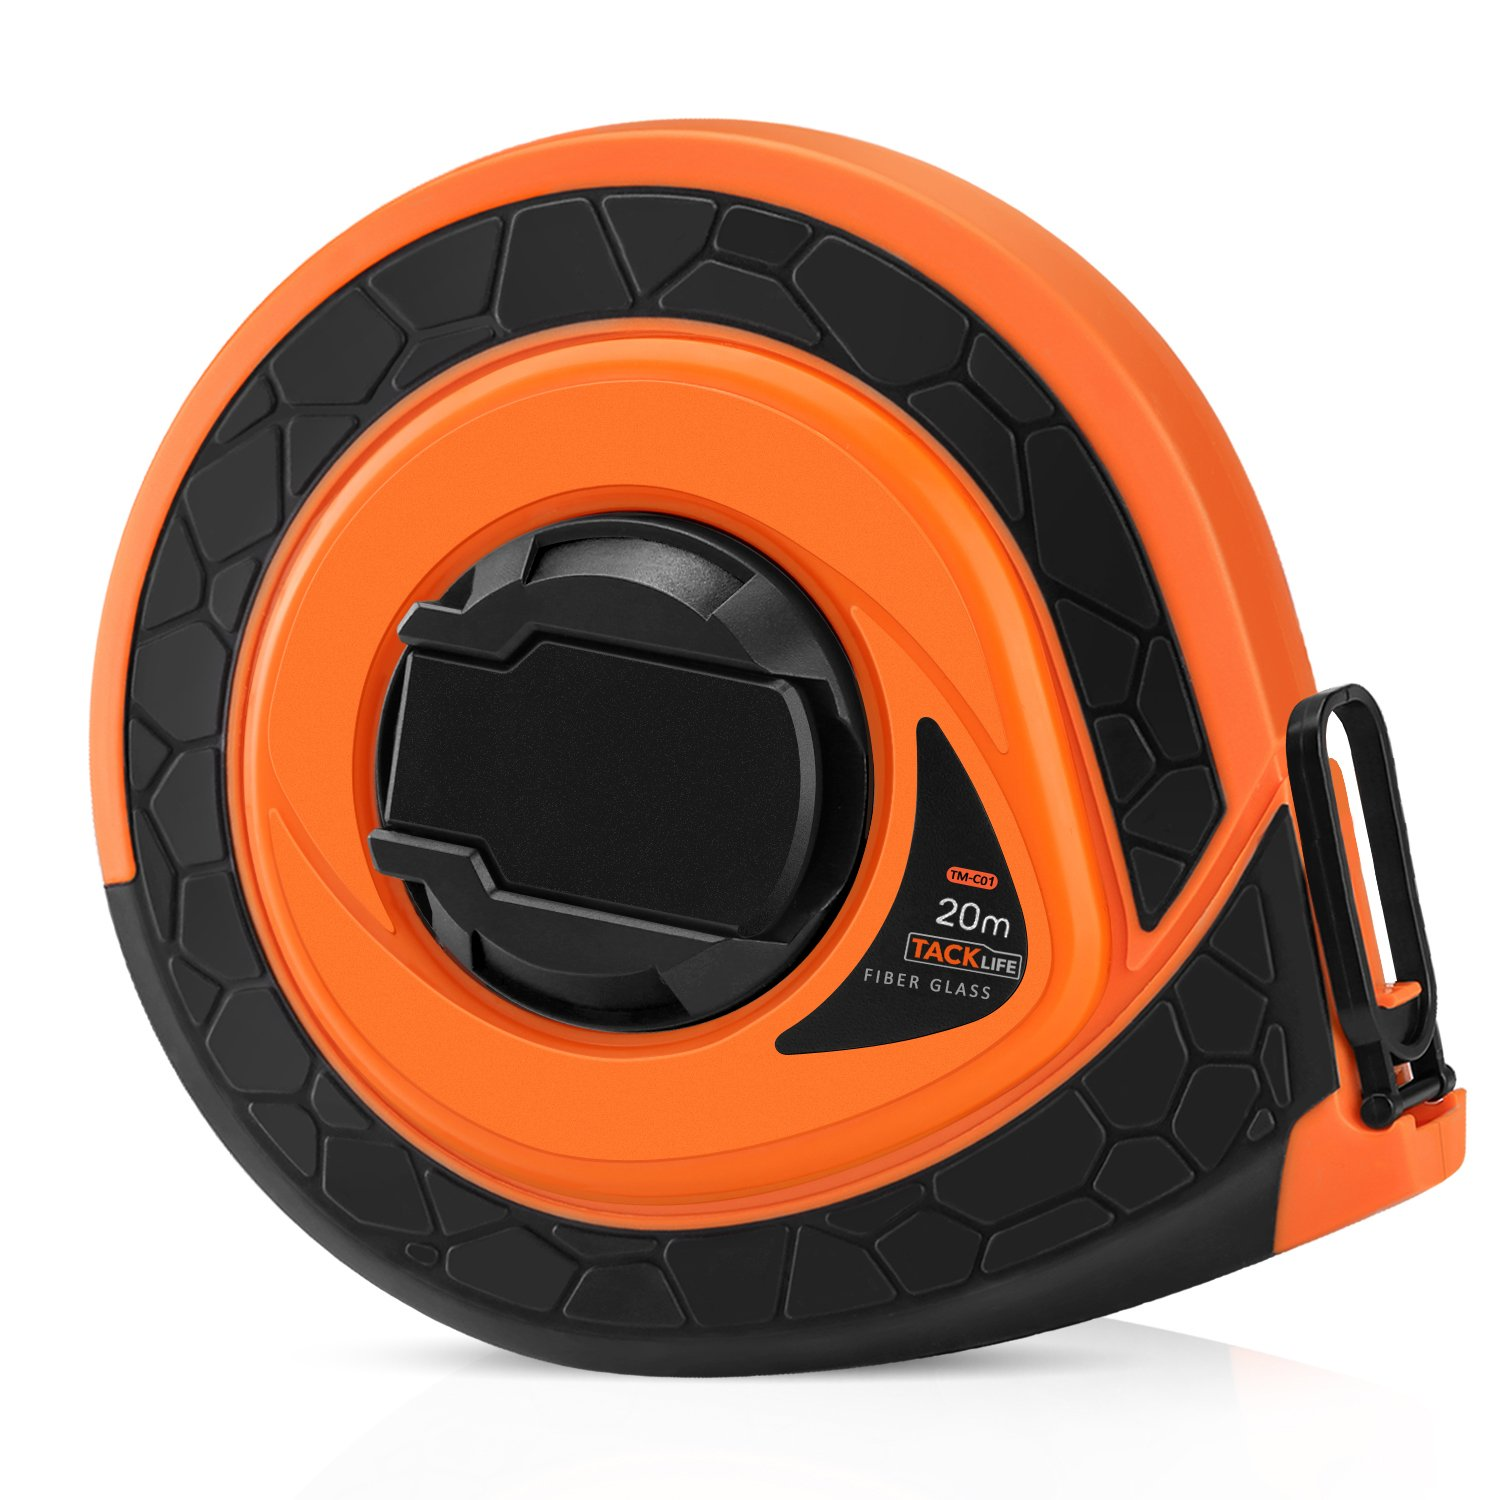 Tacklife TM-C01 Classic Manual Fiber Glass Tape Measure 66Ft with Double-Sided Scale of Inch and Metric Measuring Orange/Black for Construction, Home, Carpentry